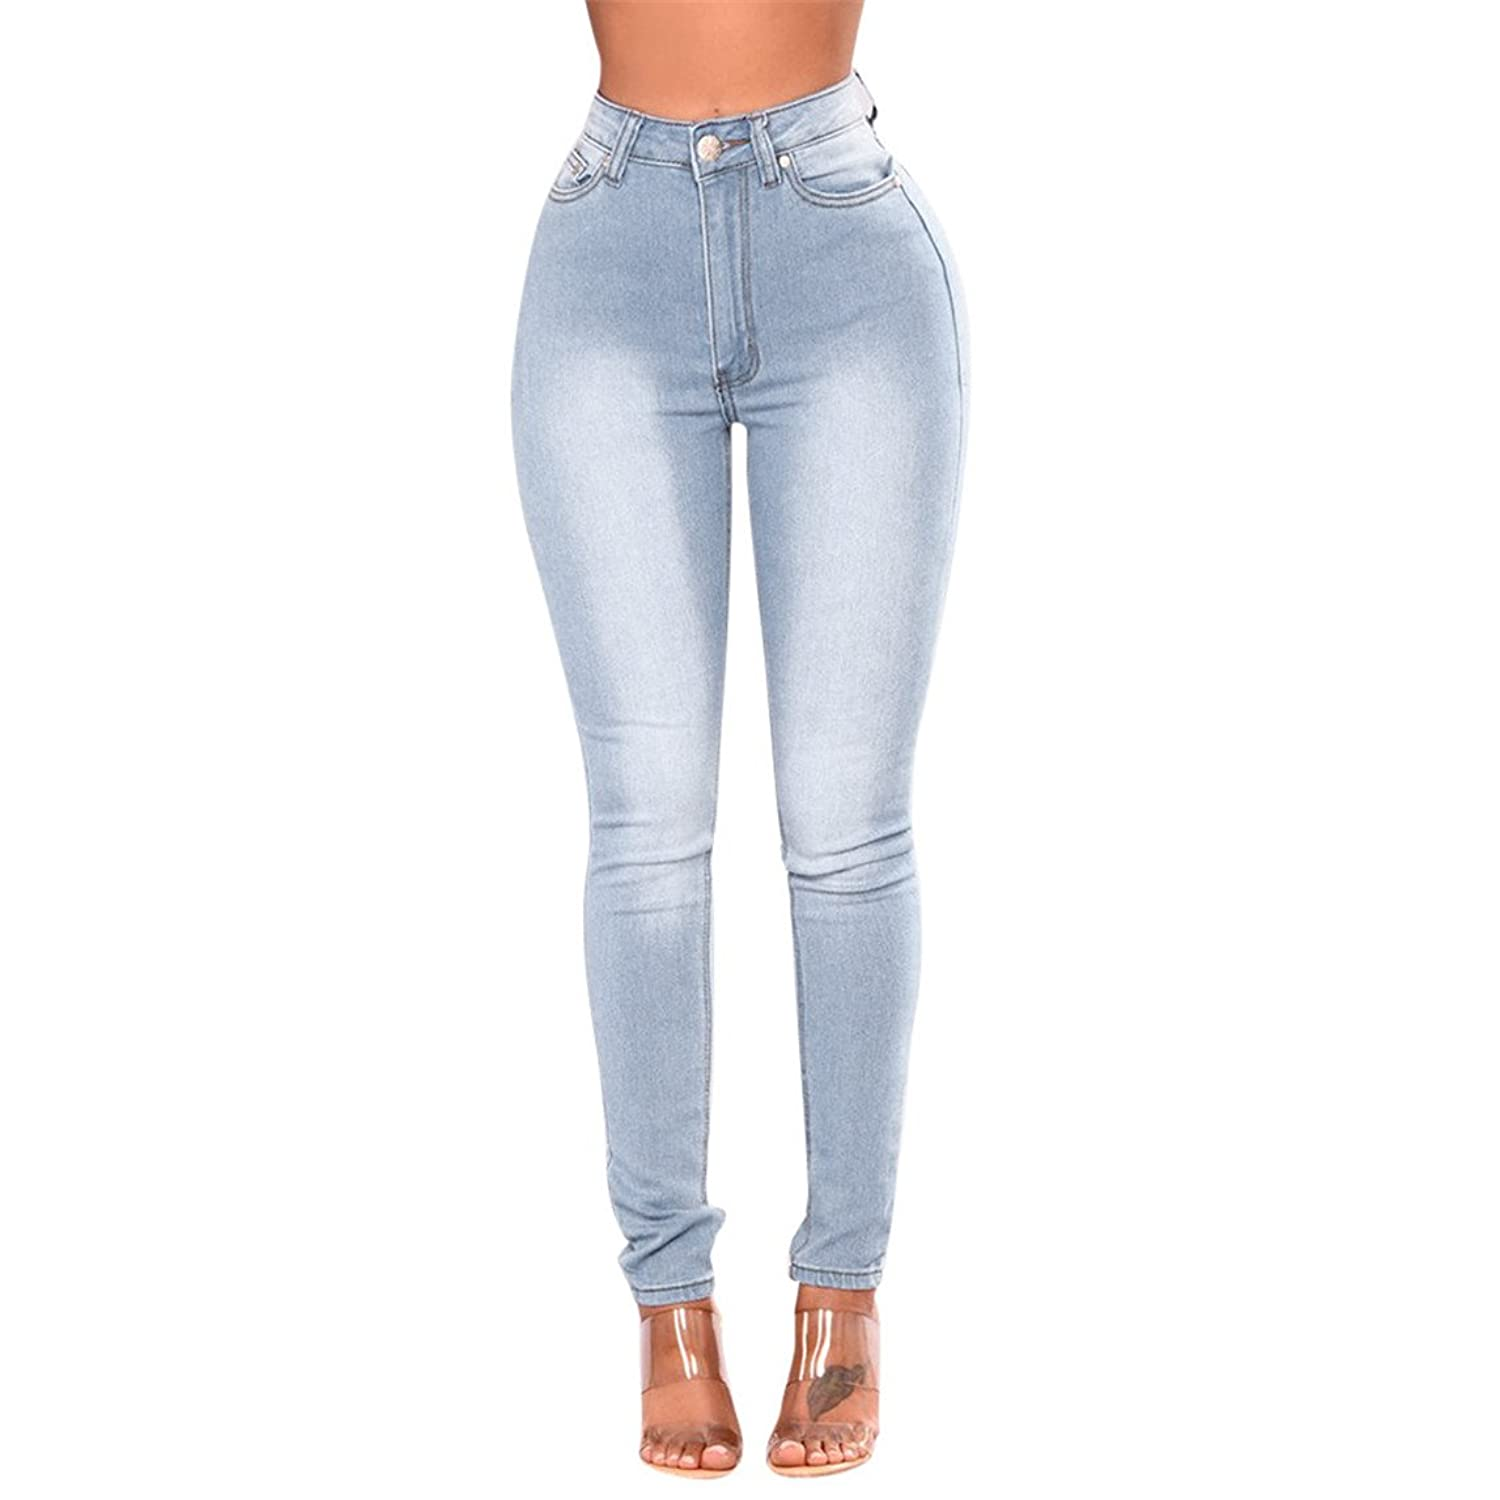 d60b08add8b Top11: Nadition Jeans Clearance !!! Womens Super Comfy Skinny Pants High  Waist Stretch Slim Pencil Trousers